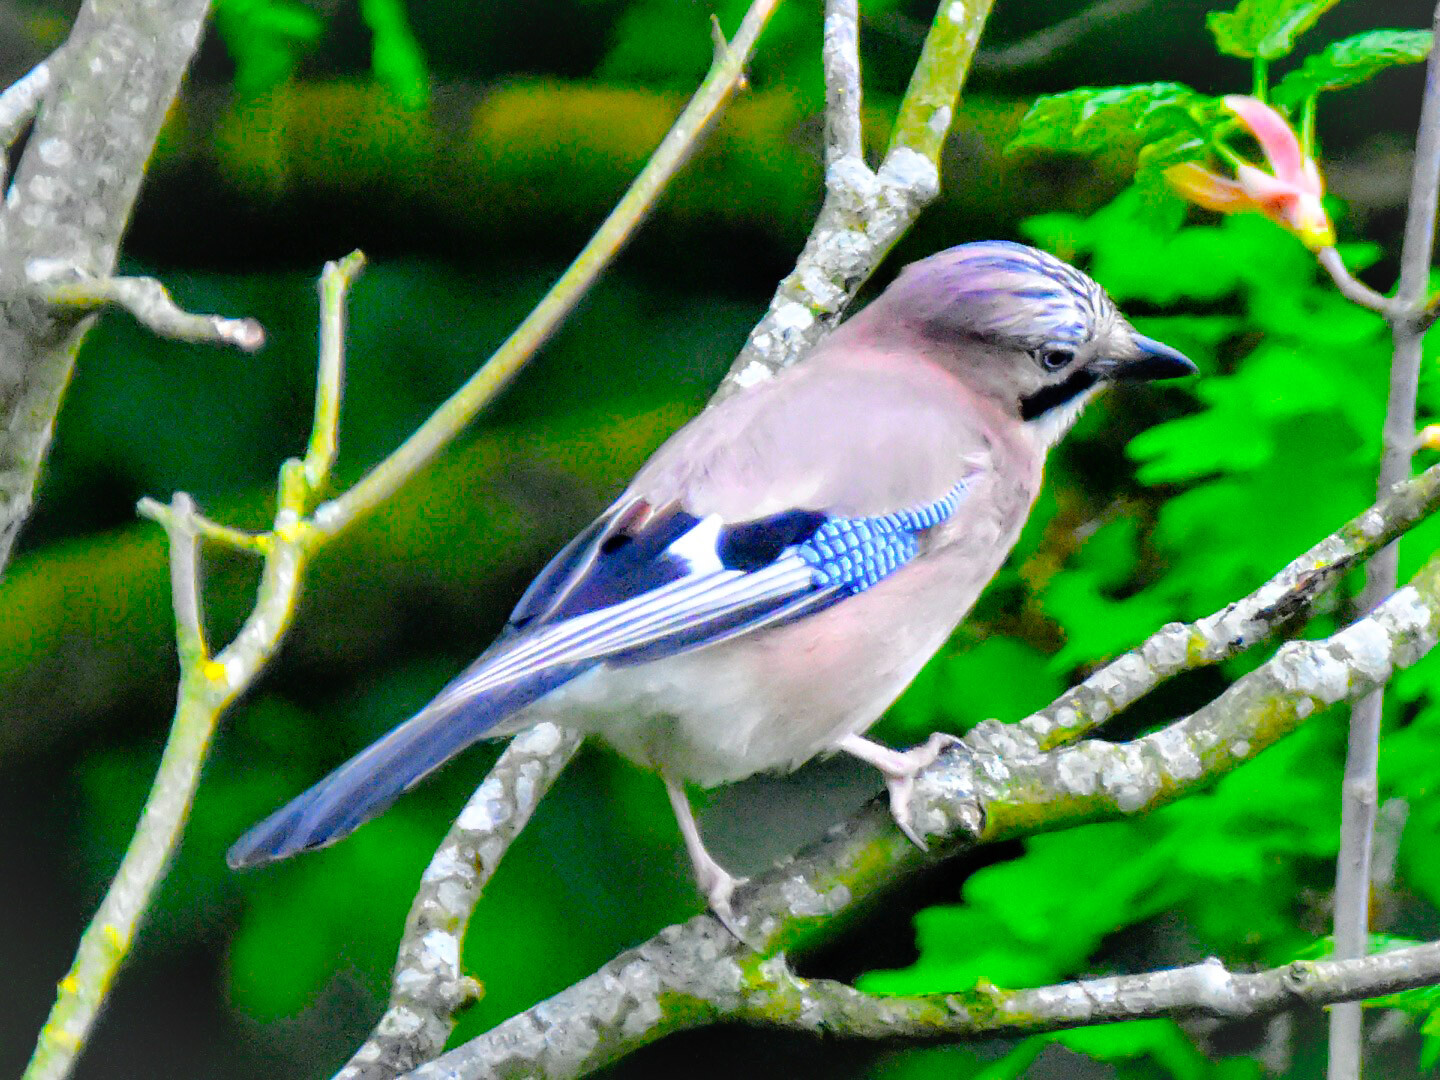 Jay, Peartree Common, Southampton